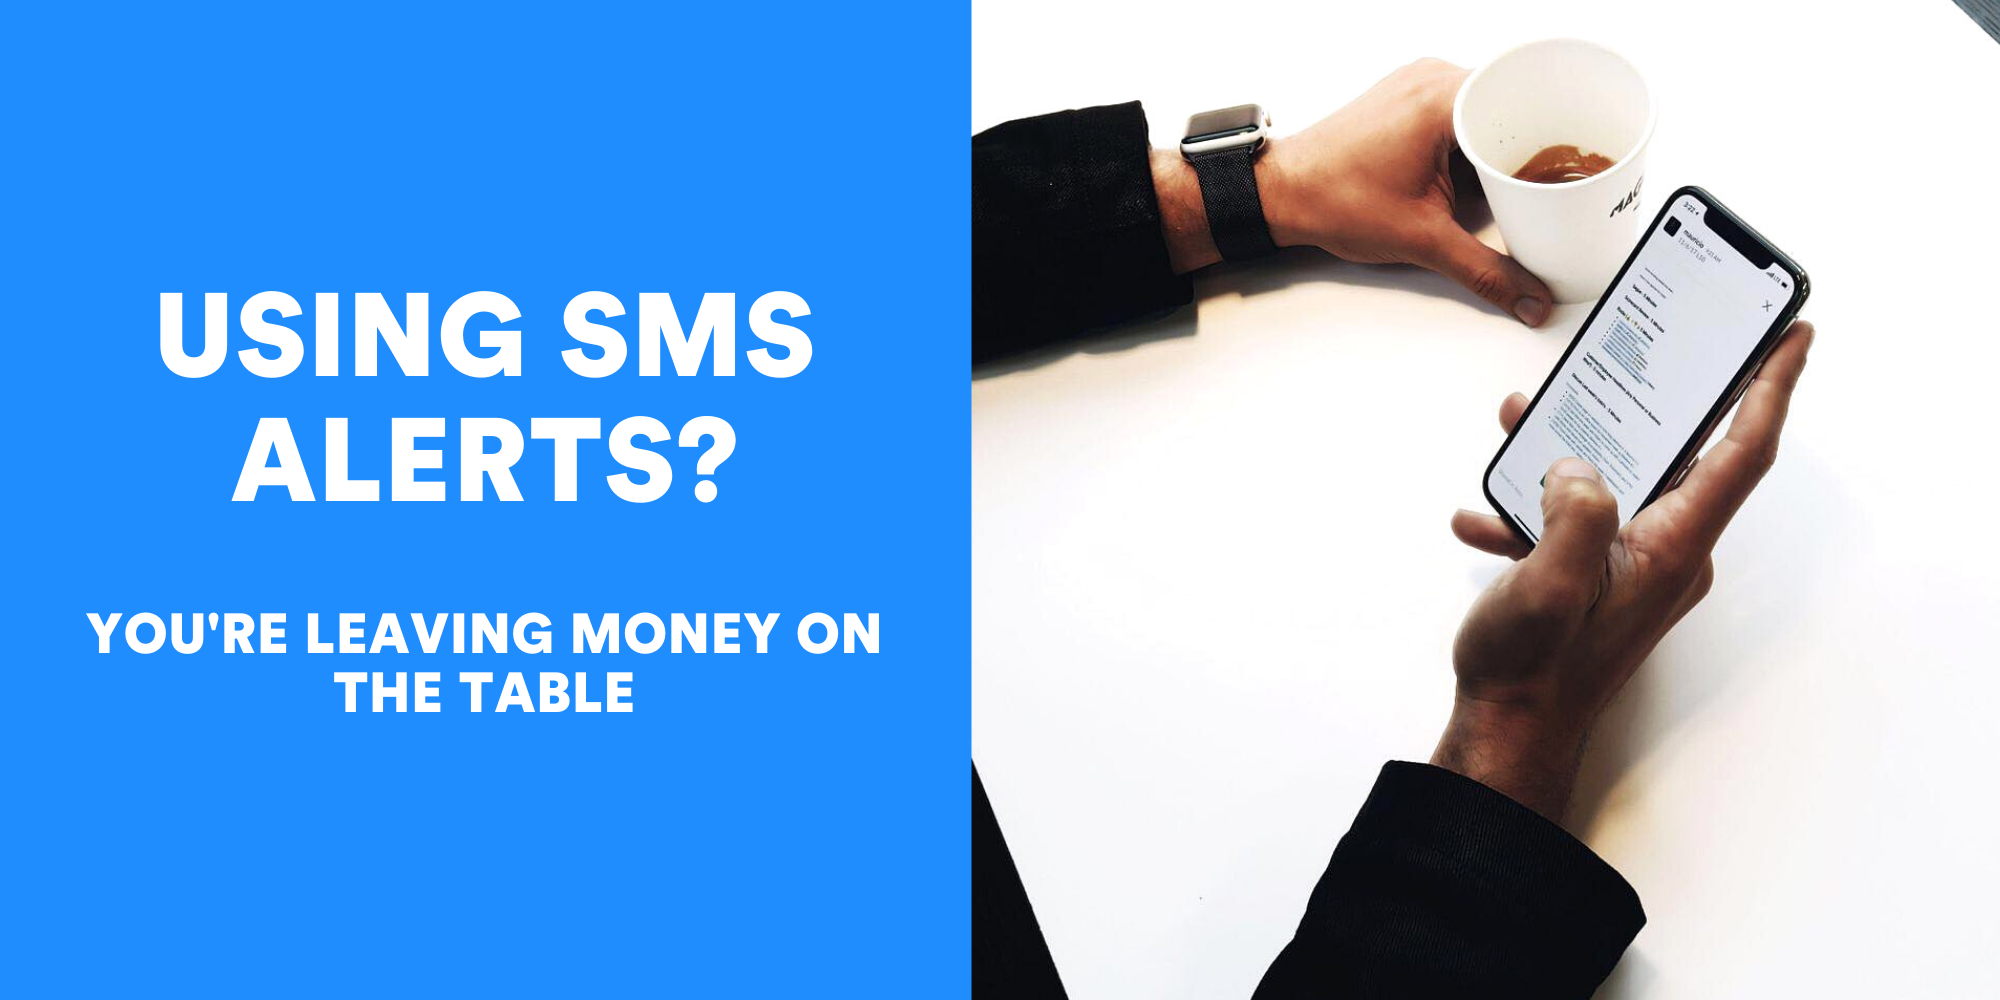 Using One-Way SMS Alerts? You're Leaving Money On The Table